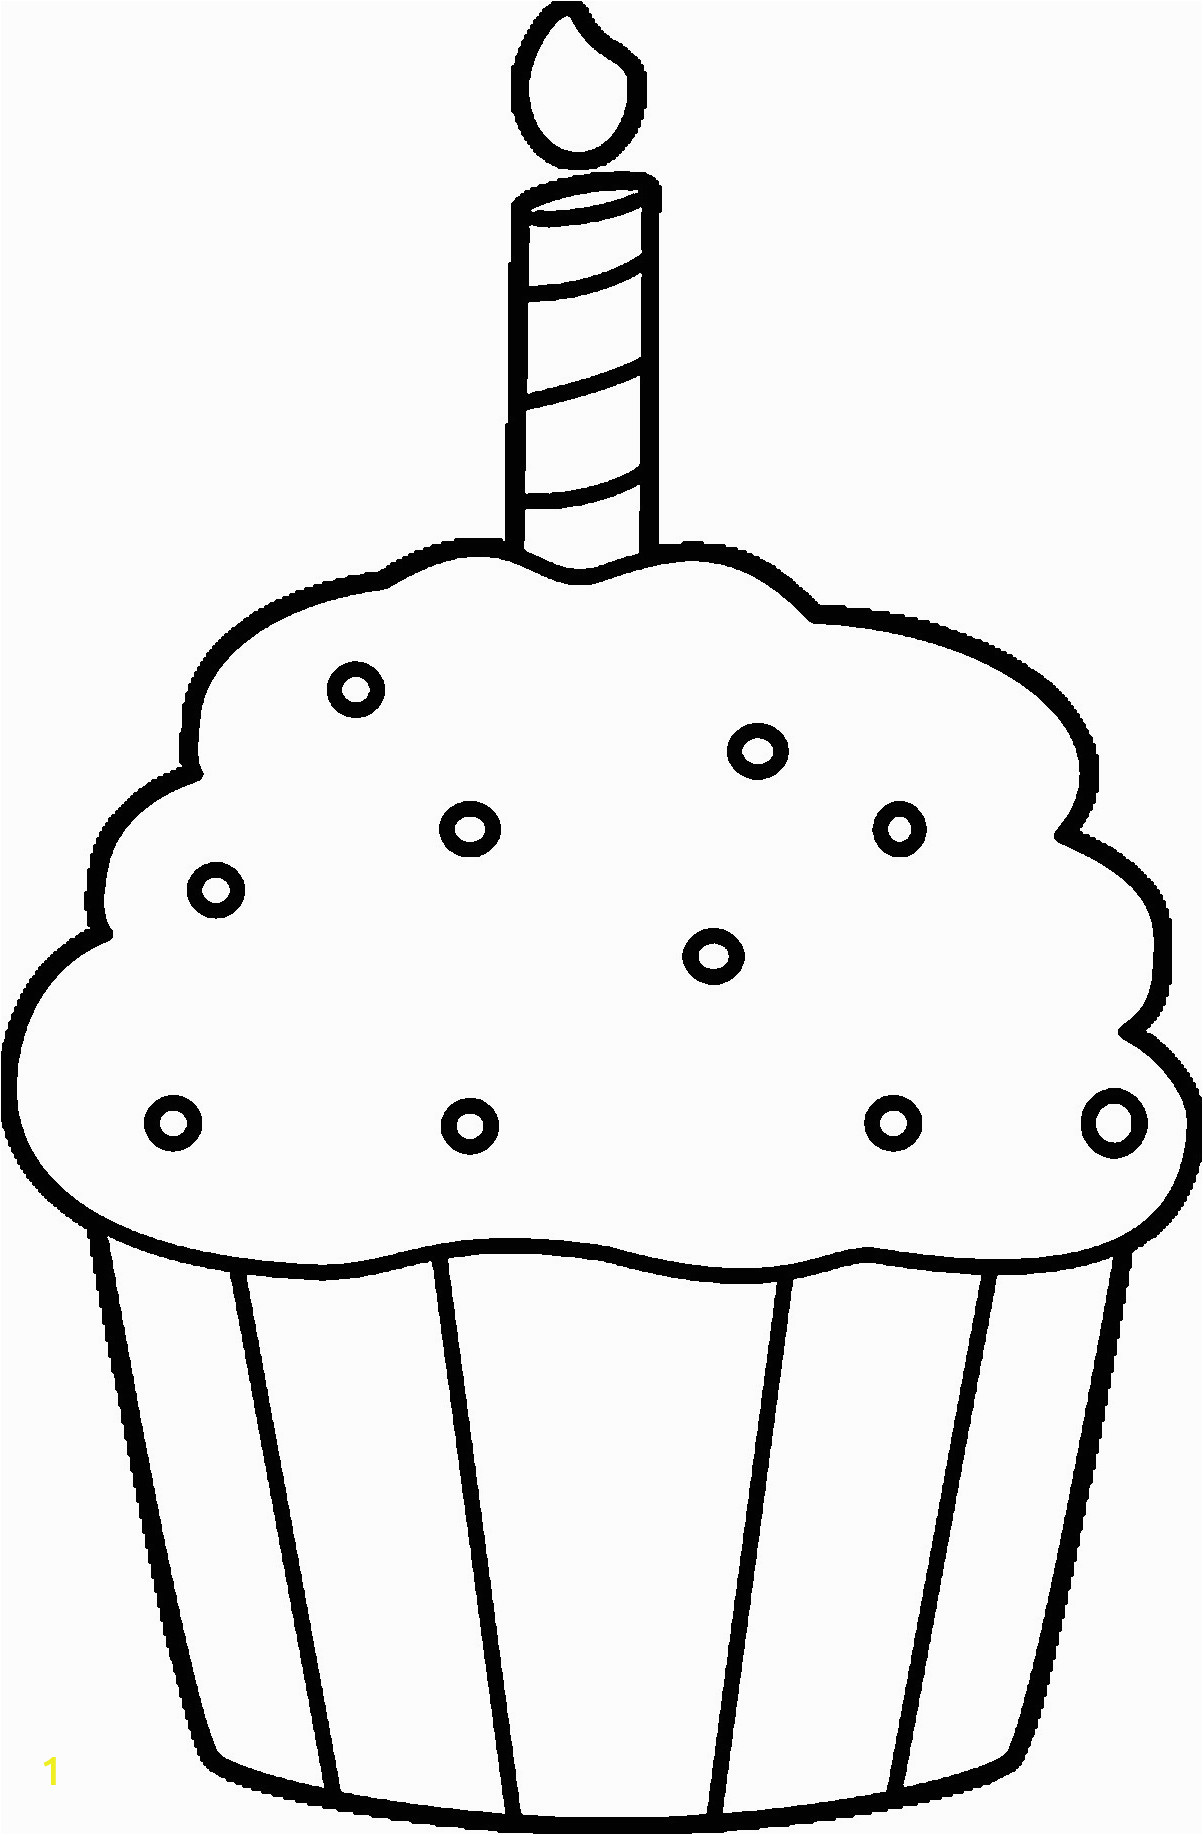 free cupcake coloring page inspirational stock luxury free coloring pages cupcakes of free cupcake coloring page